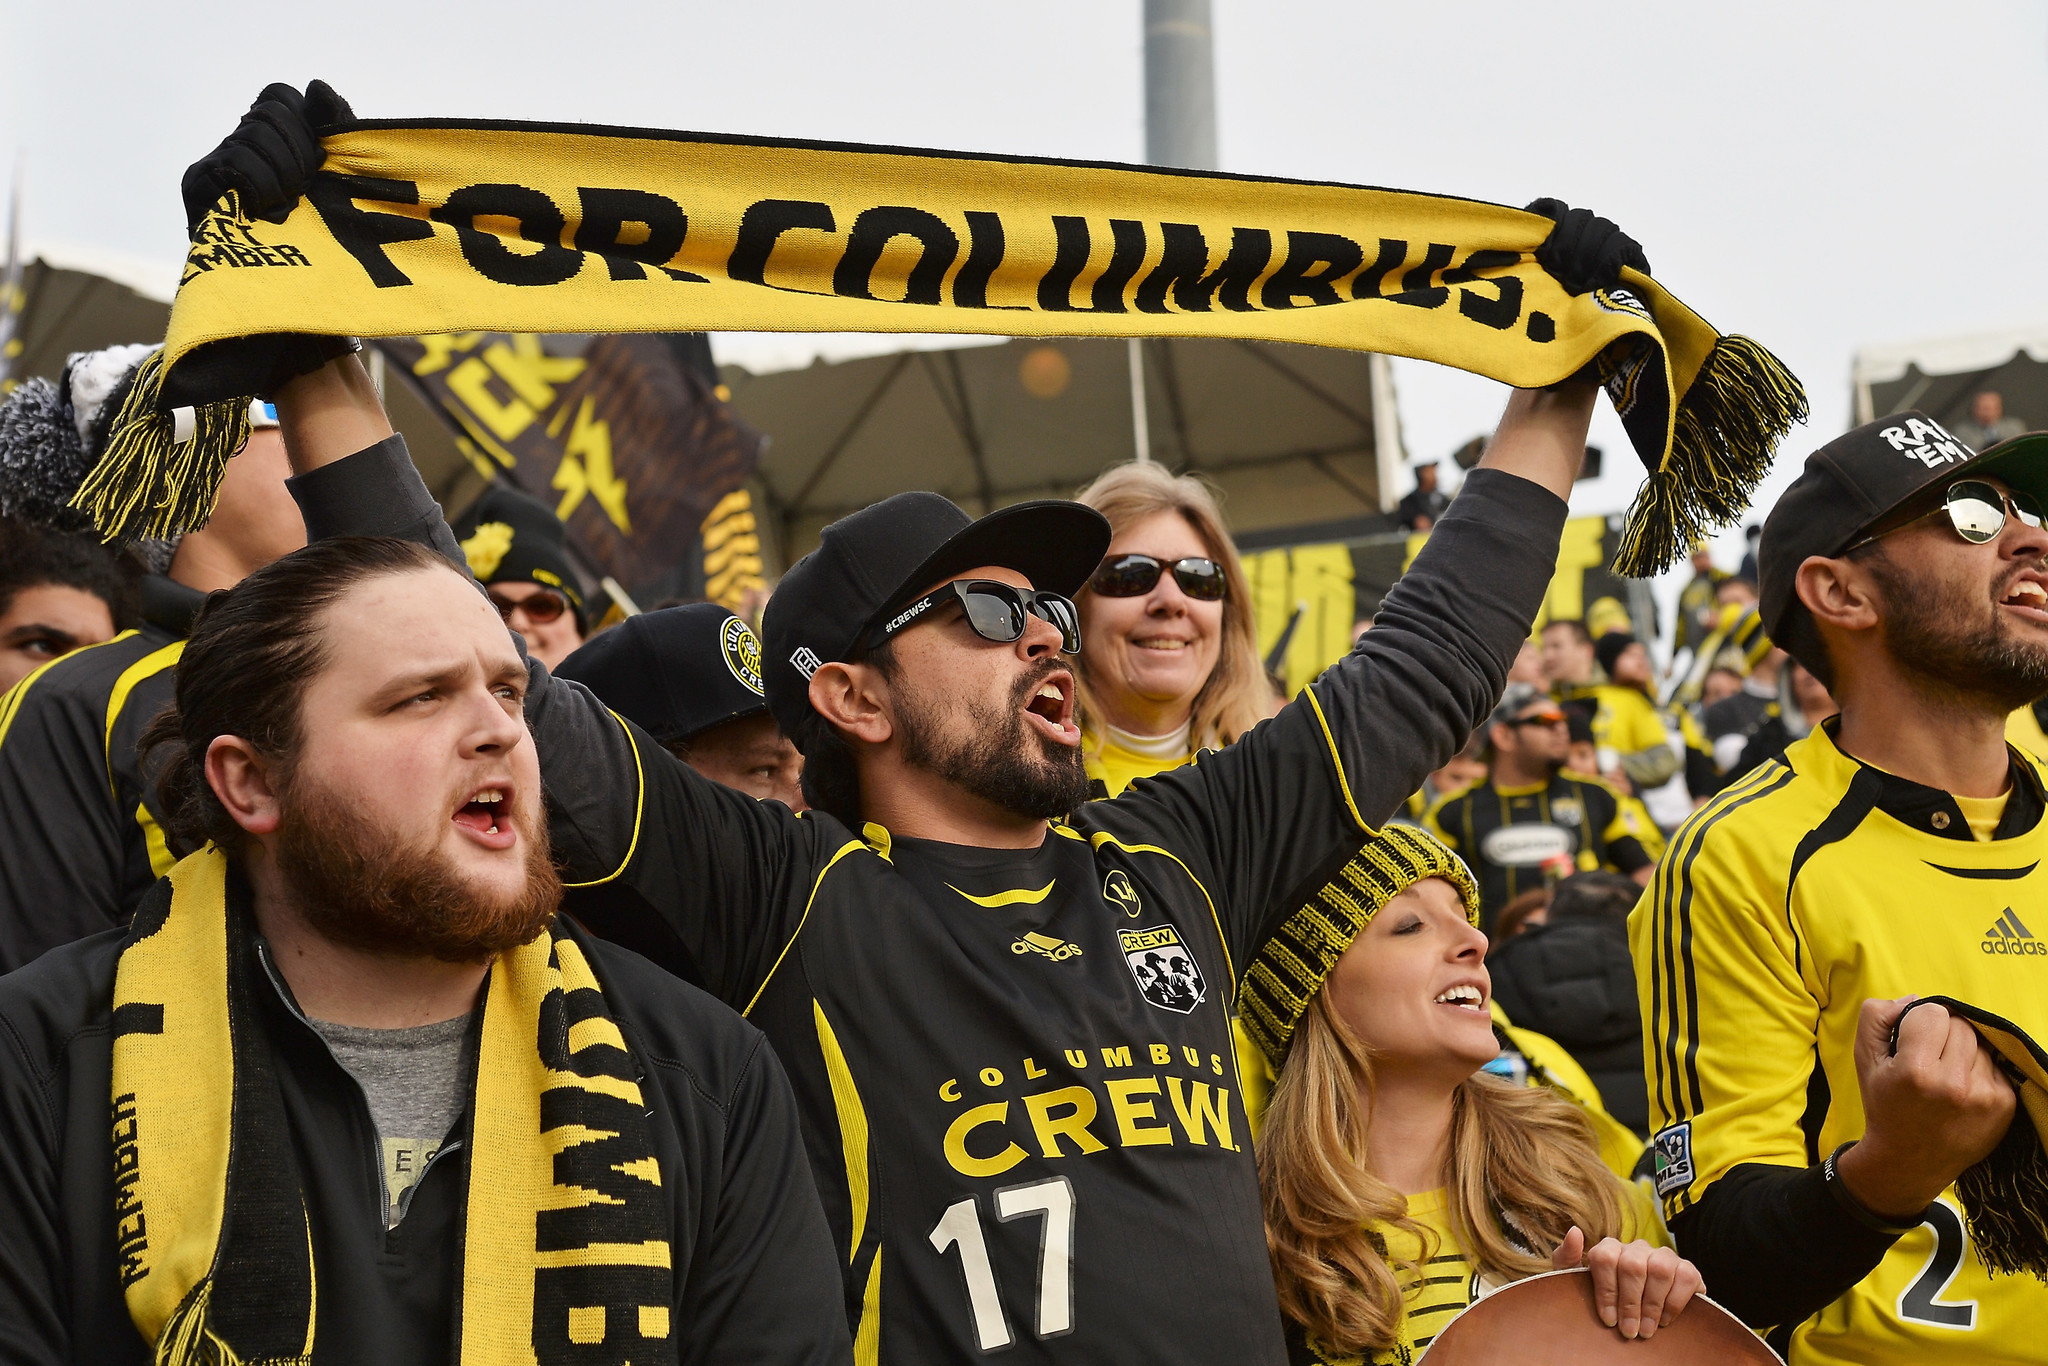 Ct-hoy-columbus-crew-changes-position-will-offer-refunds-20171026